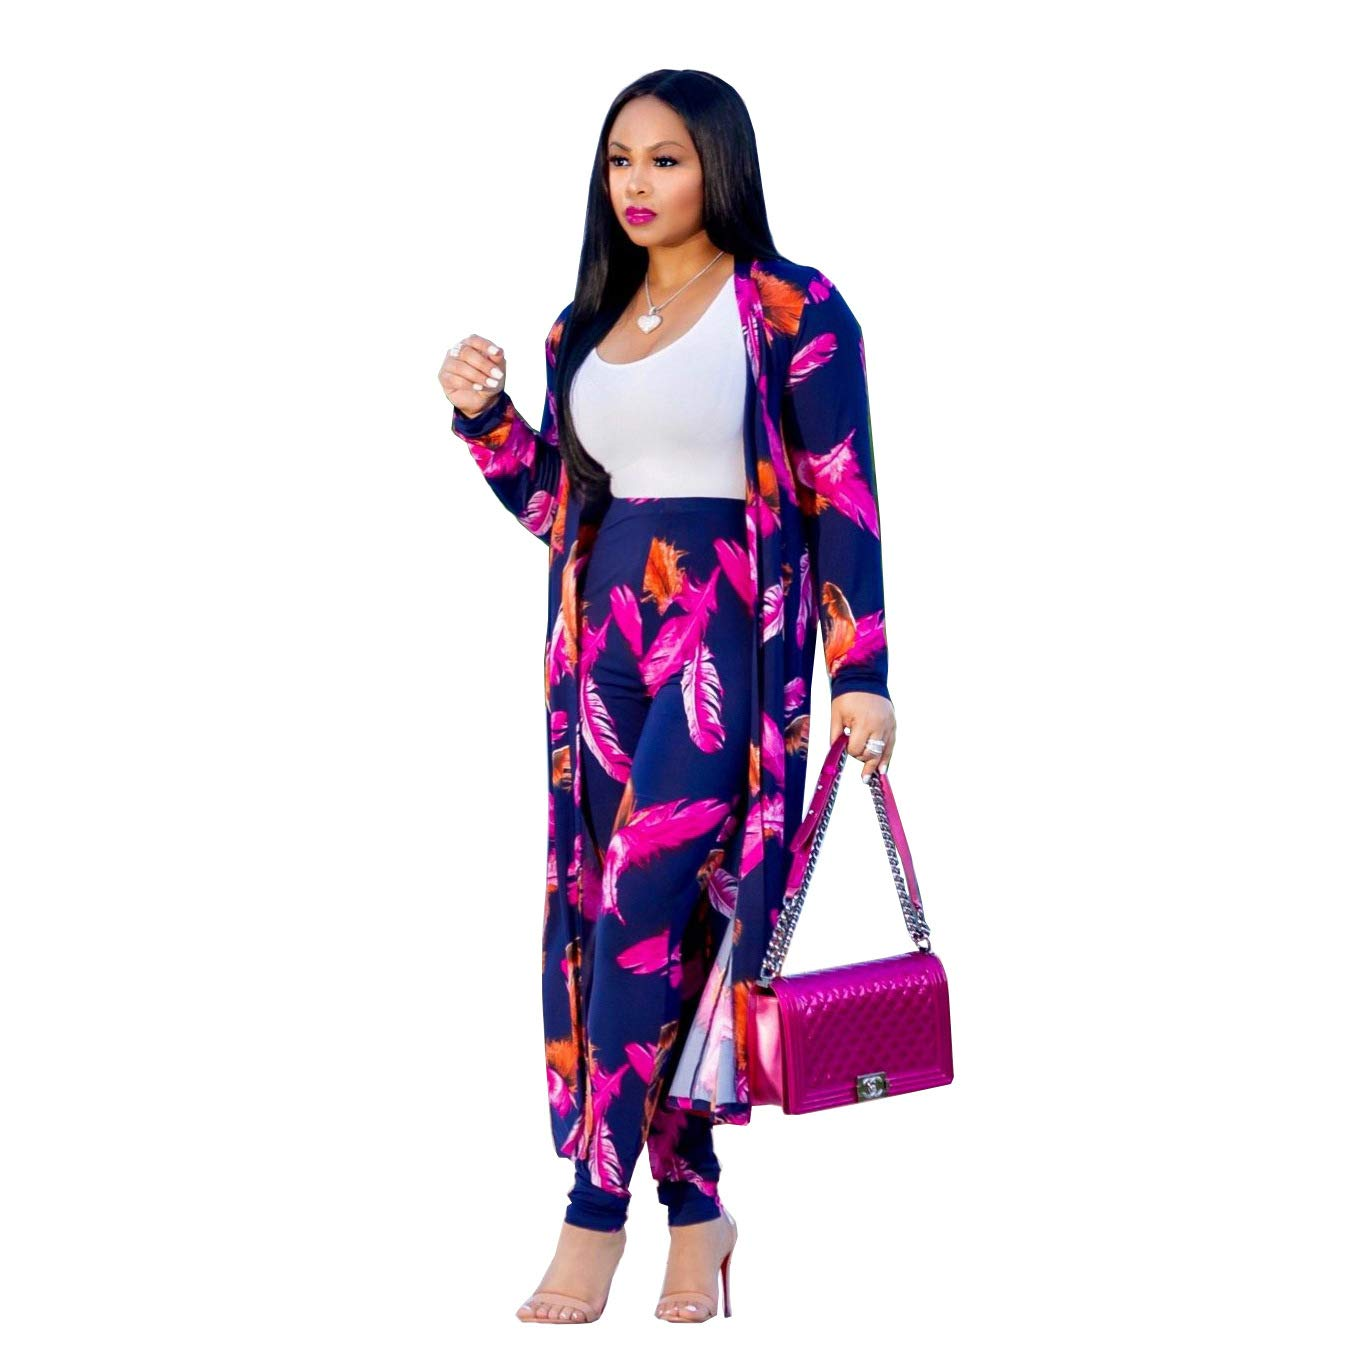 Women 2 Piece Outfits Long Sleeve Floral Open Front Cardigan and Pants Set